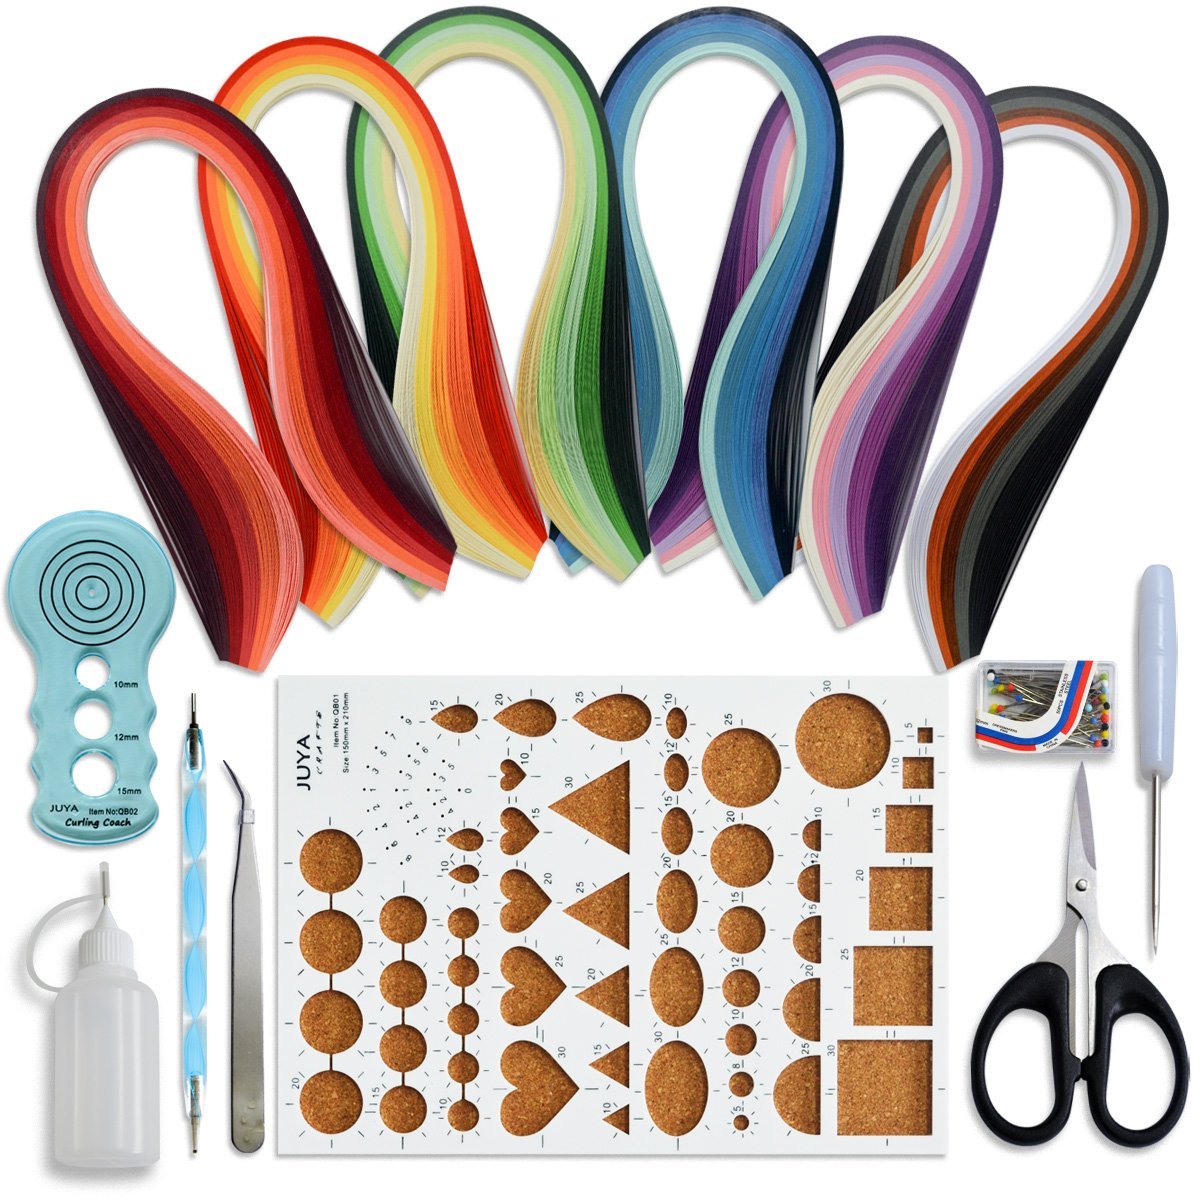 Juya Paper Quilling Kits with 30 Colors 600 Strips and 8 Tools (Width:3mm with Glue, Pink Tools) QK11